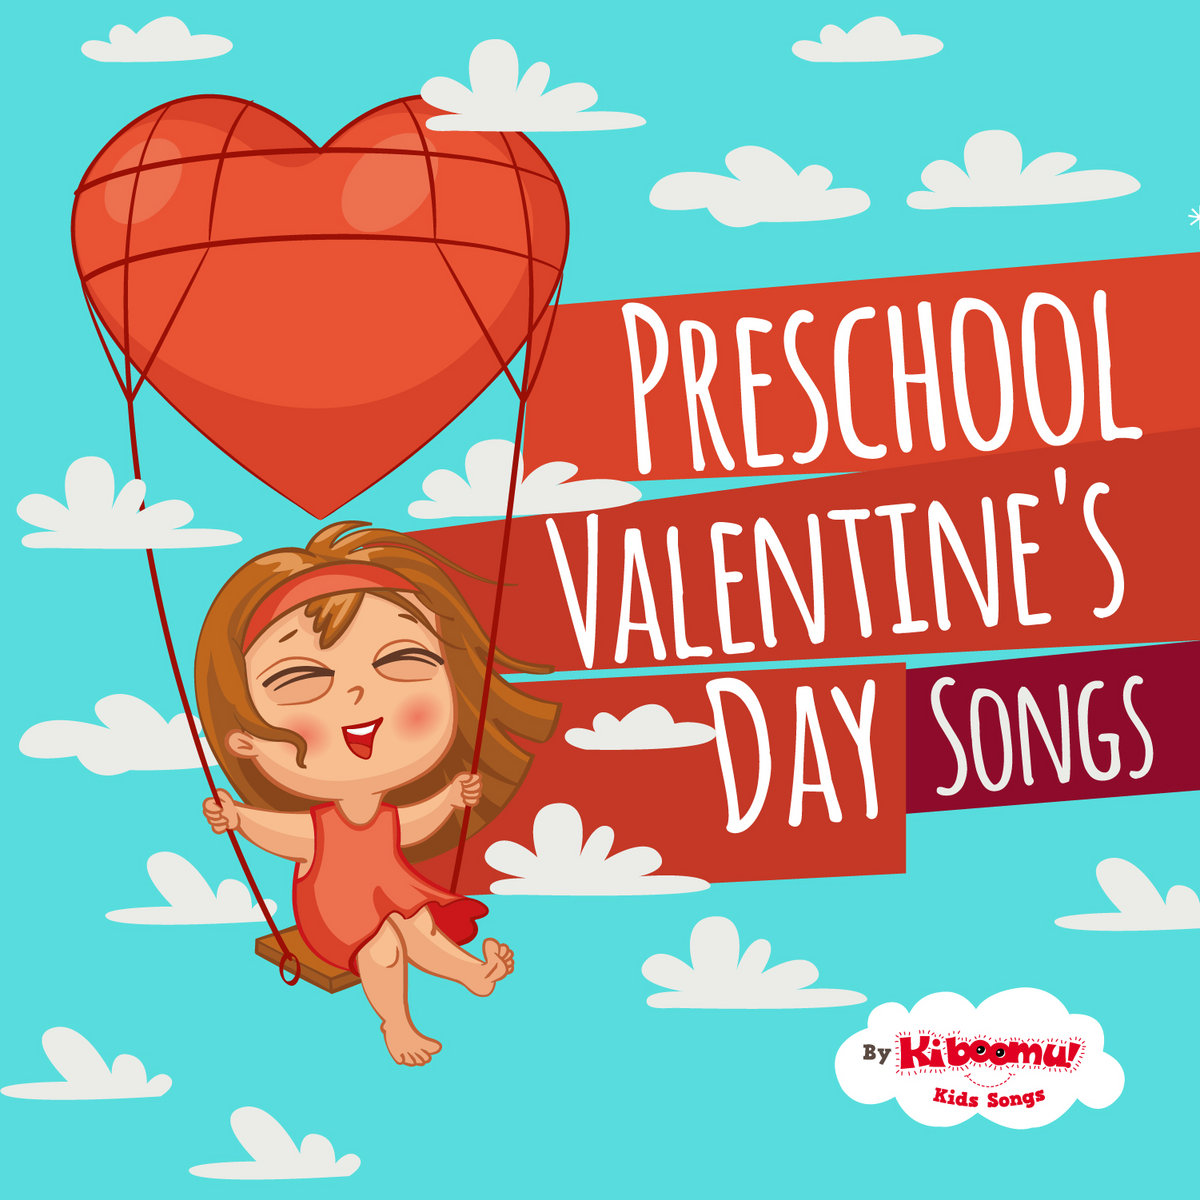 preschool valentines day songs by the kiboomers via kiboomu kids songs - Preschool Valentine Songs